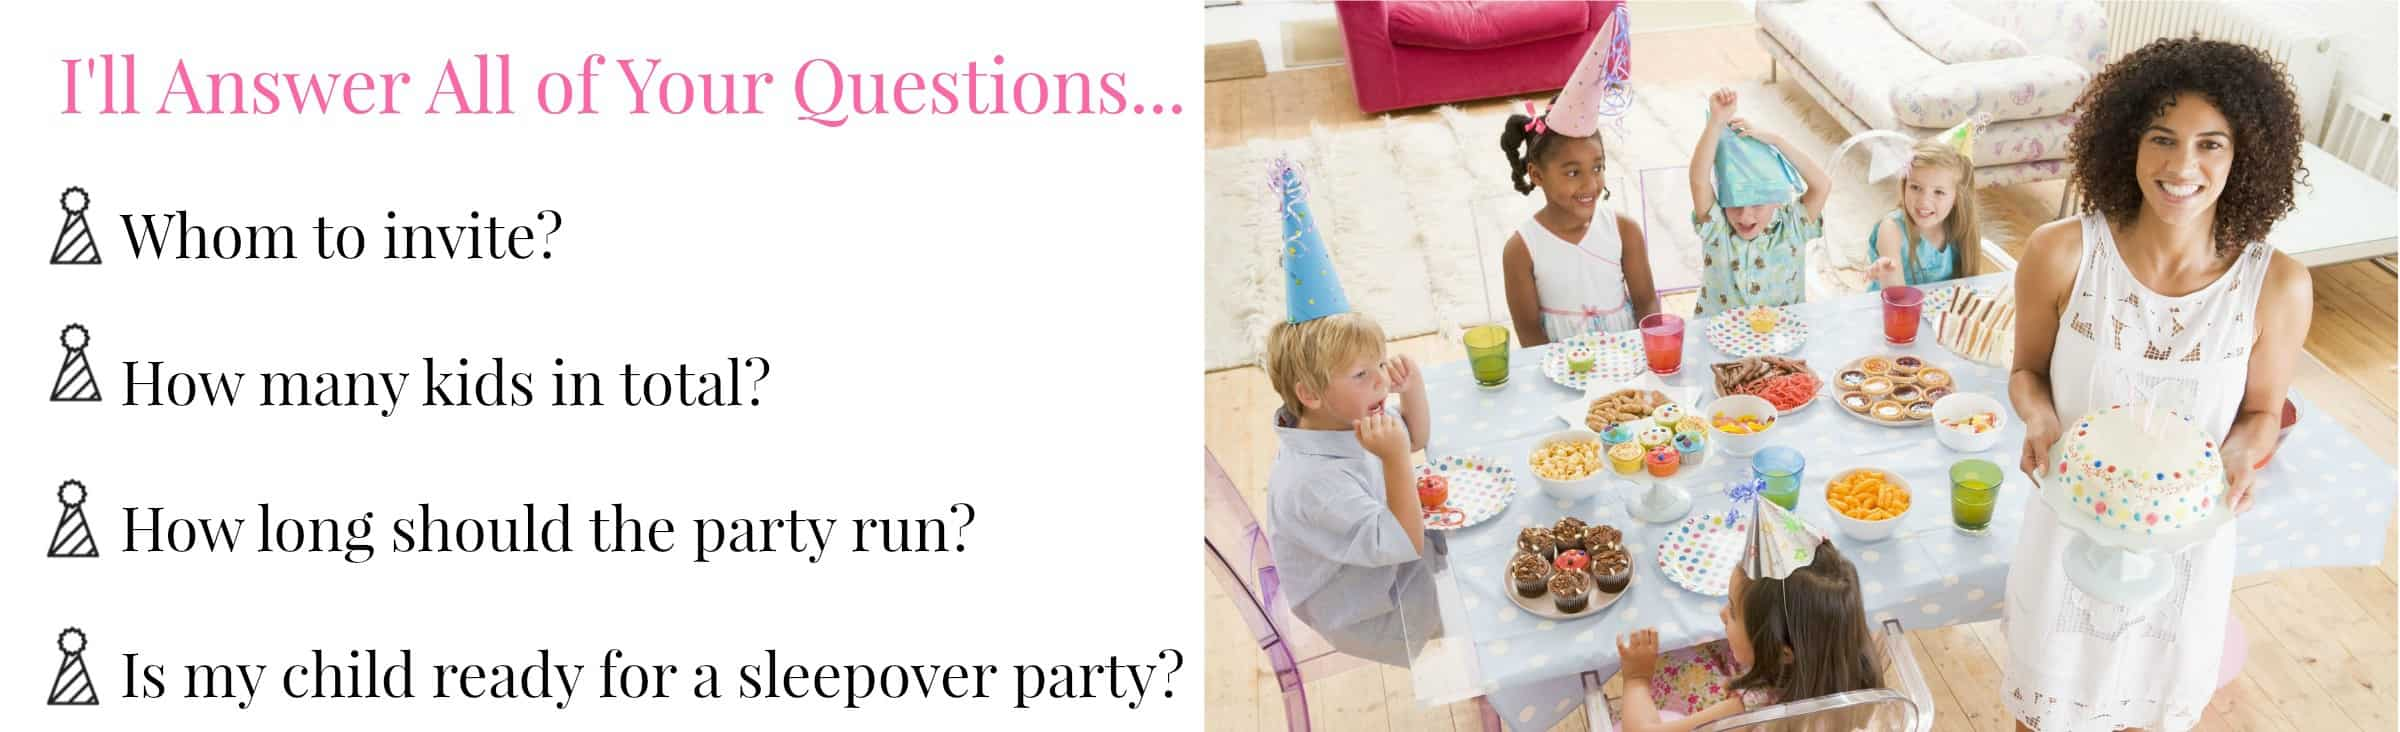 How to Throw an Awesome Birthday Party at Home for Less Than $100 ...